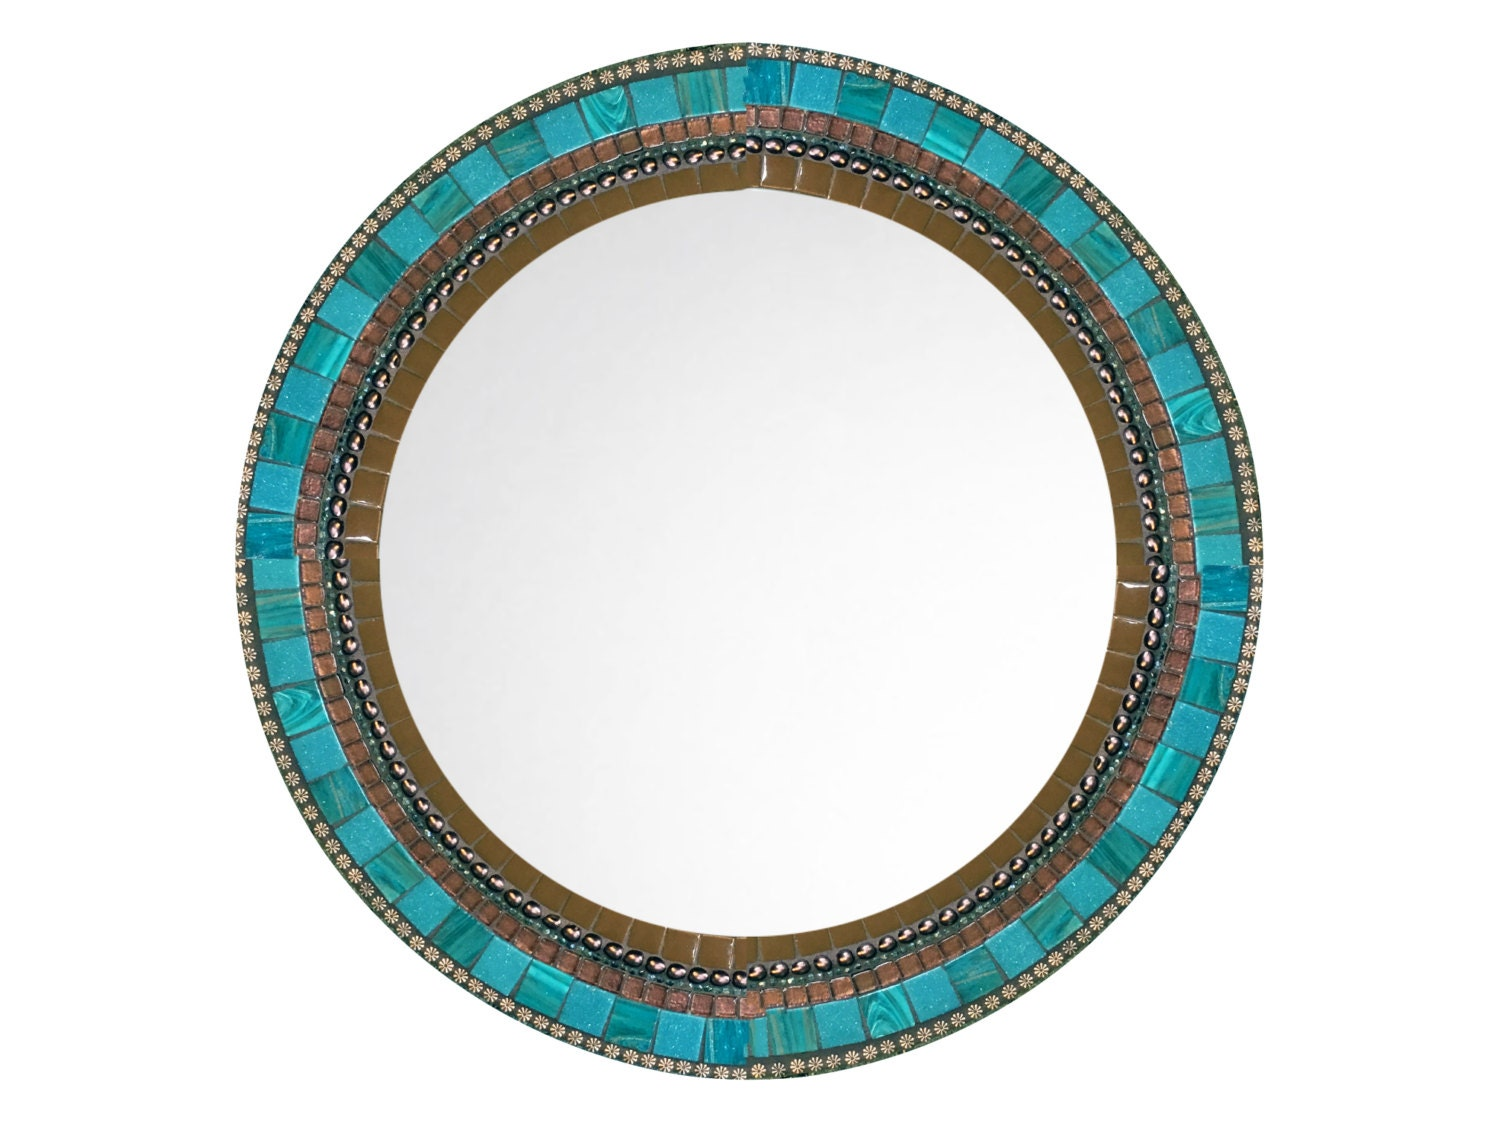 Round wall mirror brown and aqua mosaic decorative mirror Round decorative wall mirrors